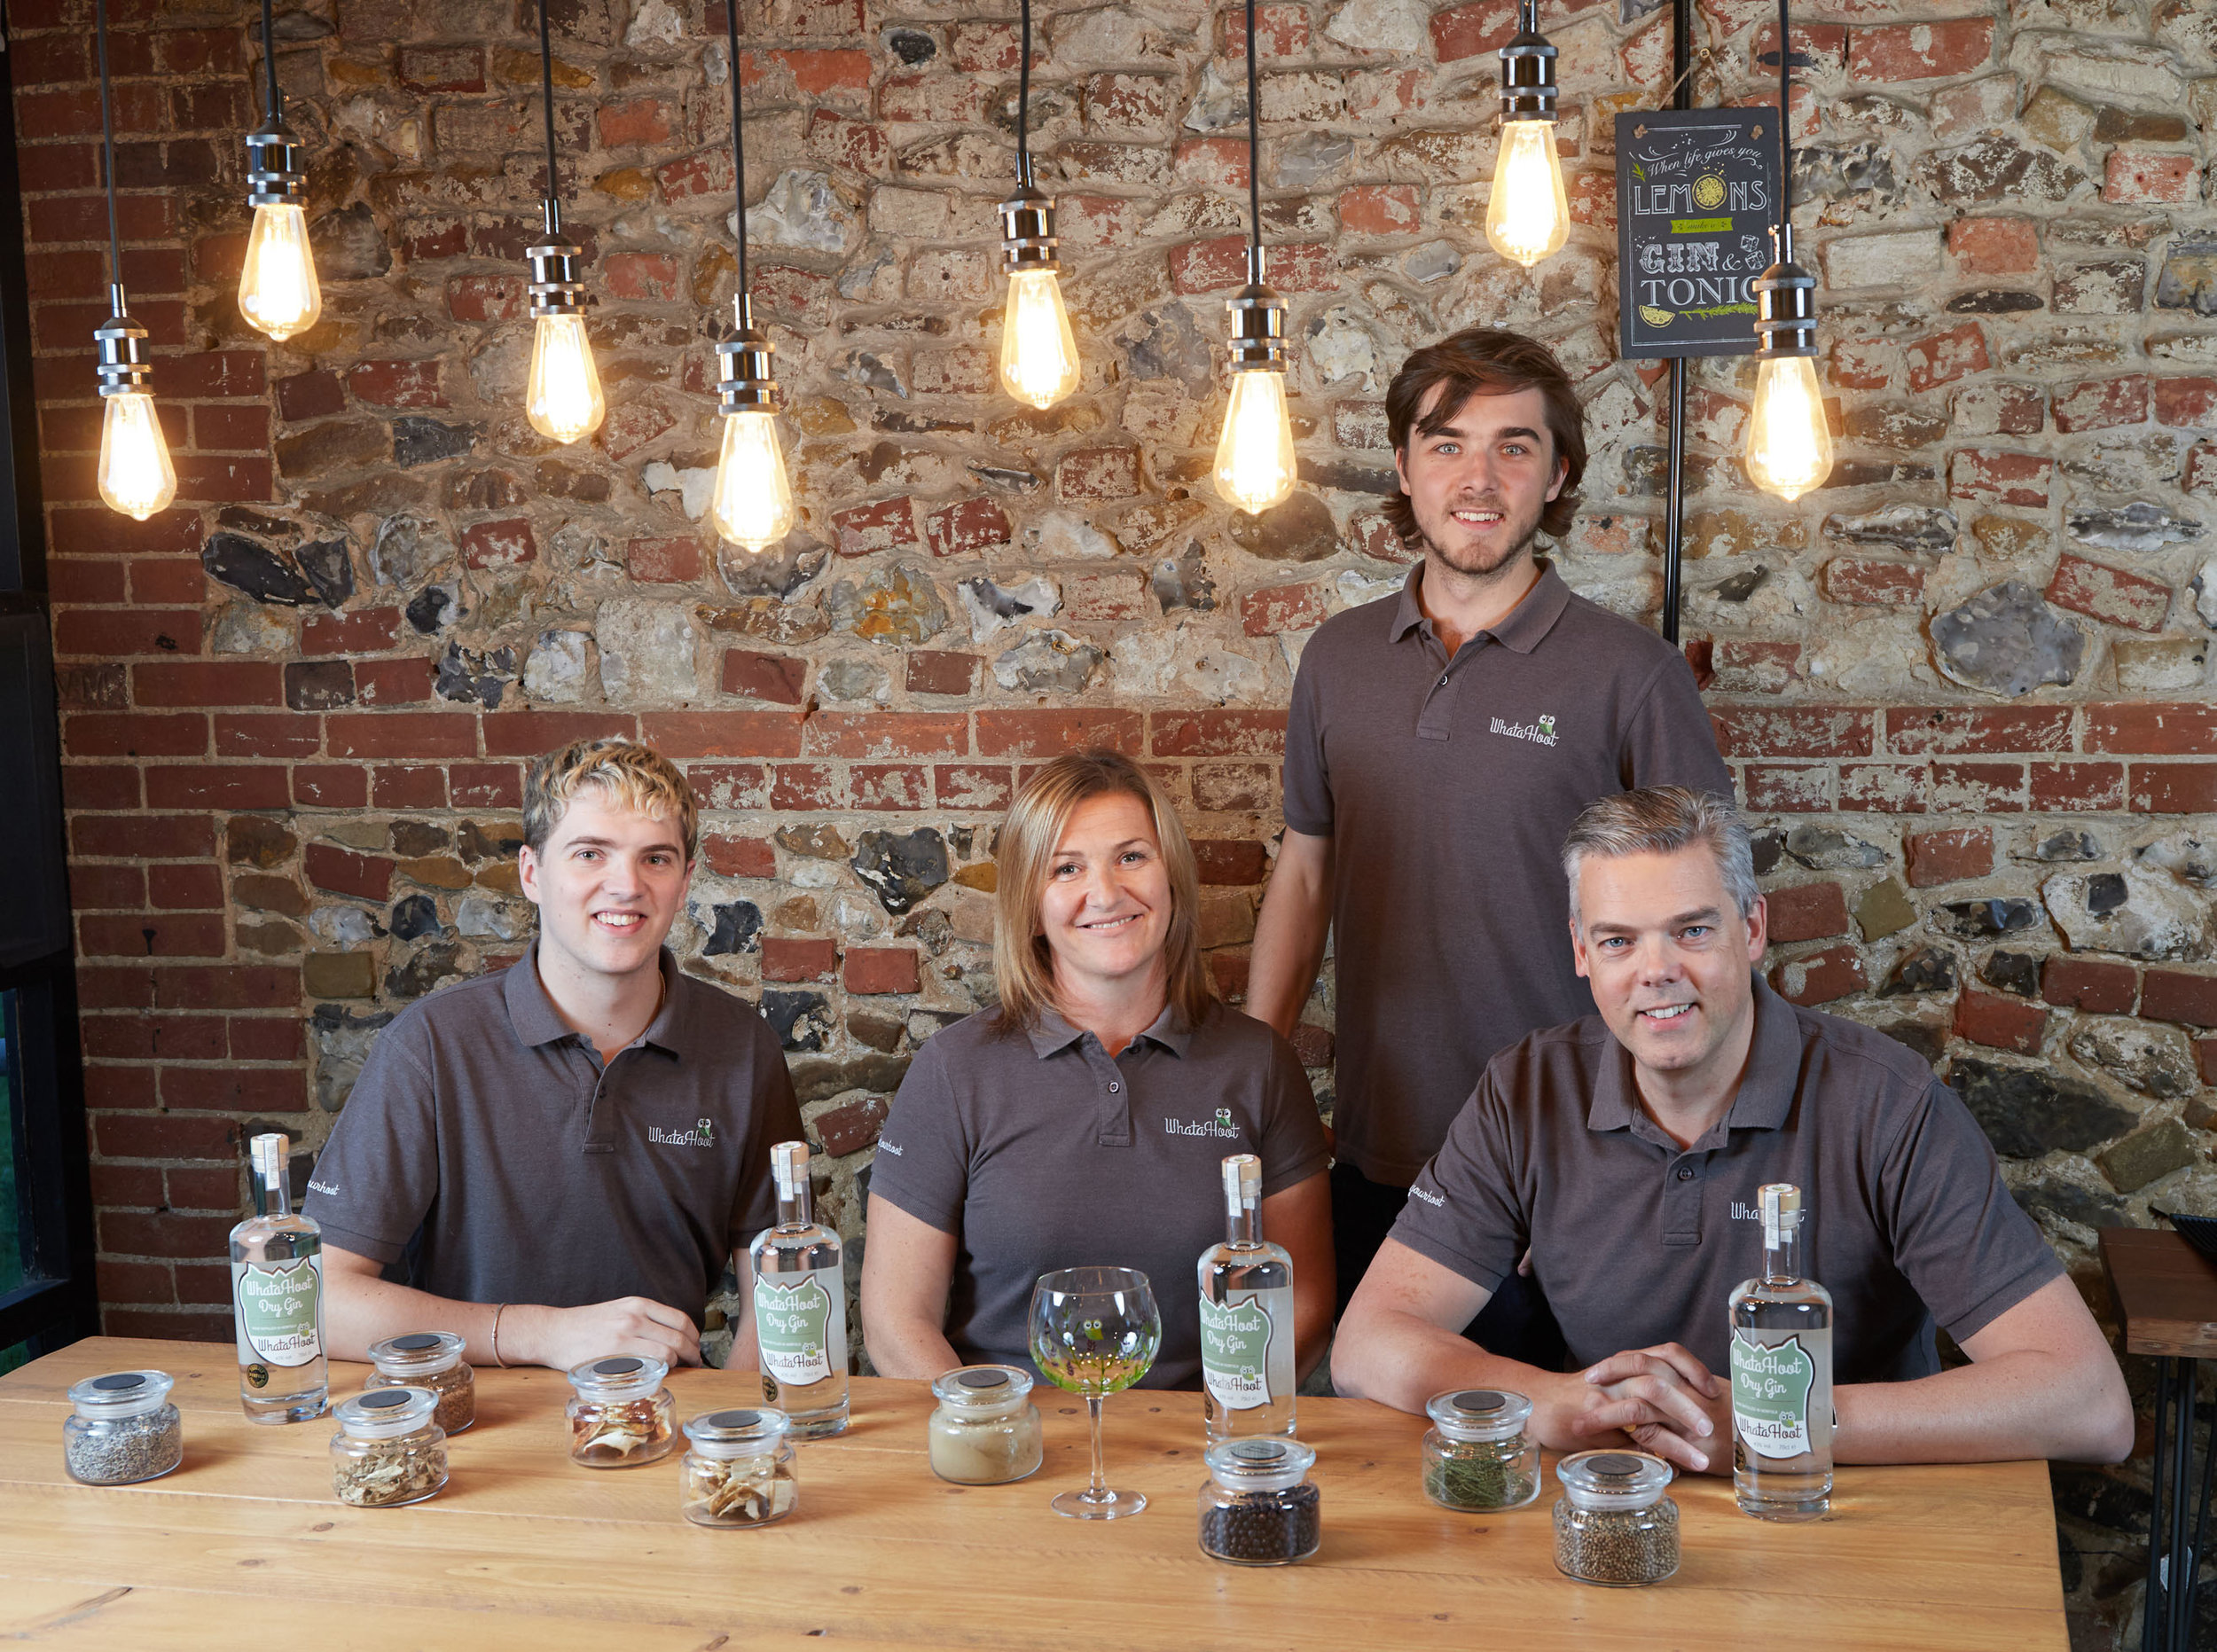 'WhataHoot' – A local business to 'hoot' about! - What a Hoot tell us all about their 'hoot' and how they started their business